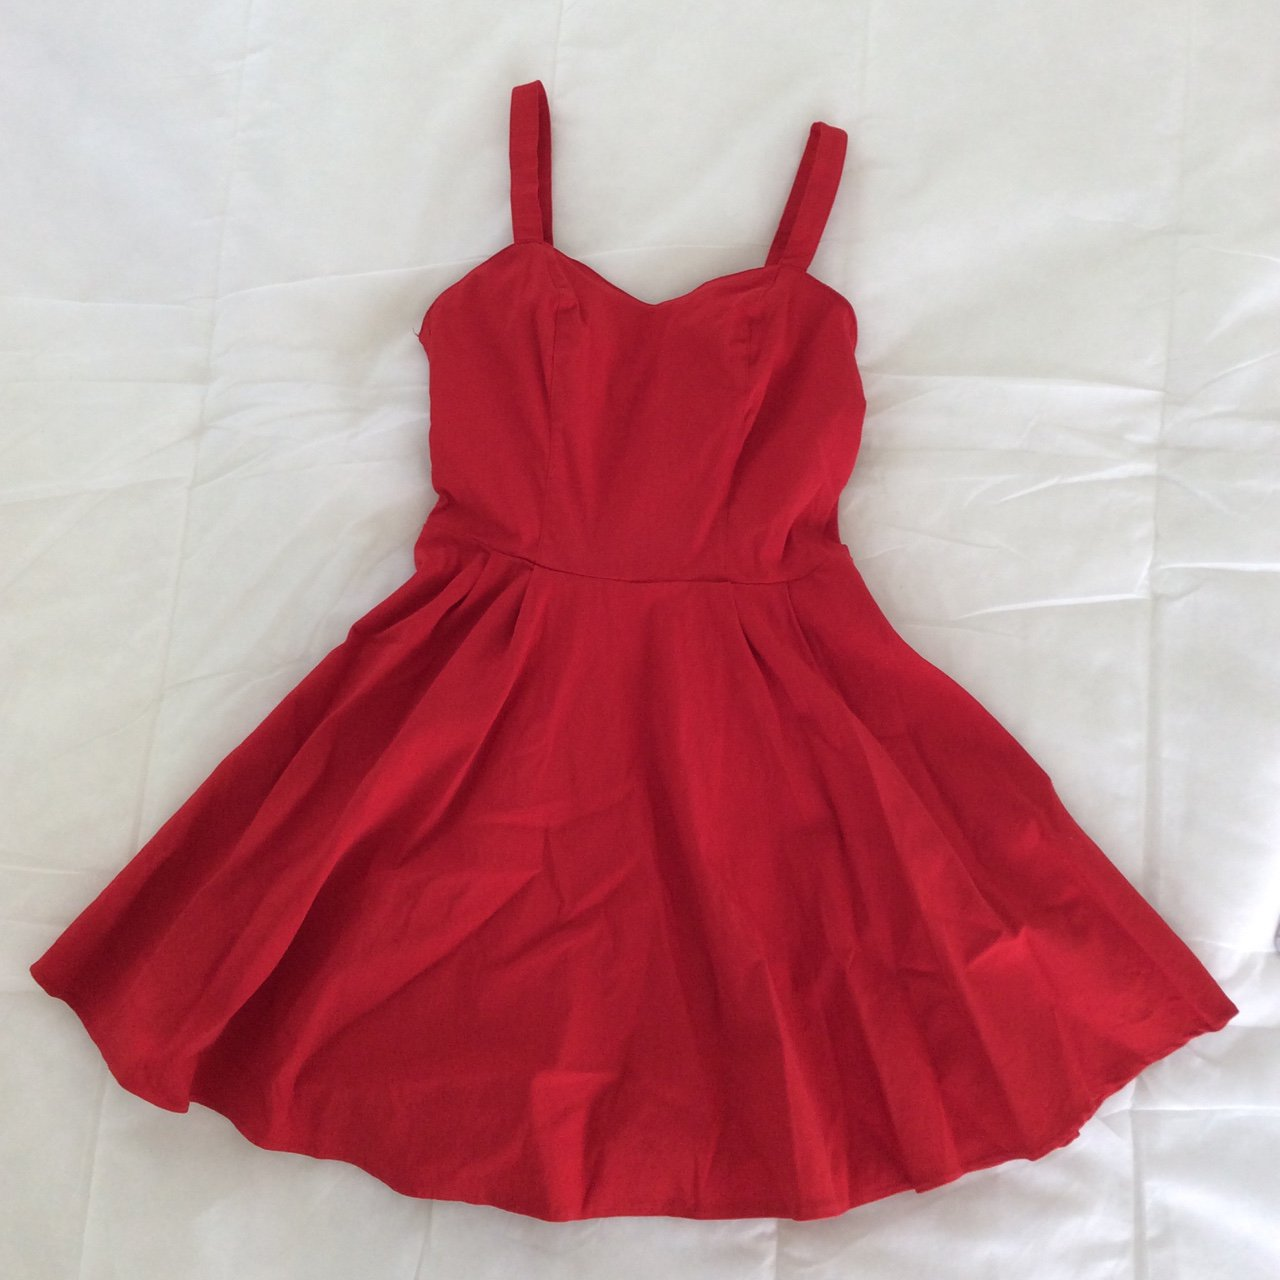 941a4bc0f2 ASOS skater dress. Only wore once! Very flattering. Size 8 - Depop